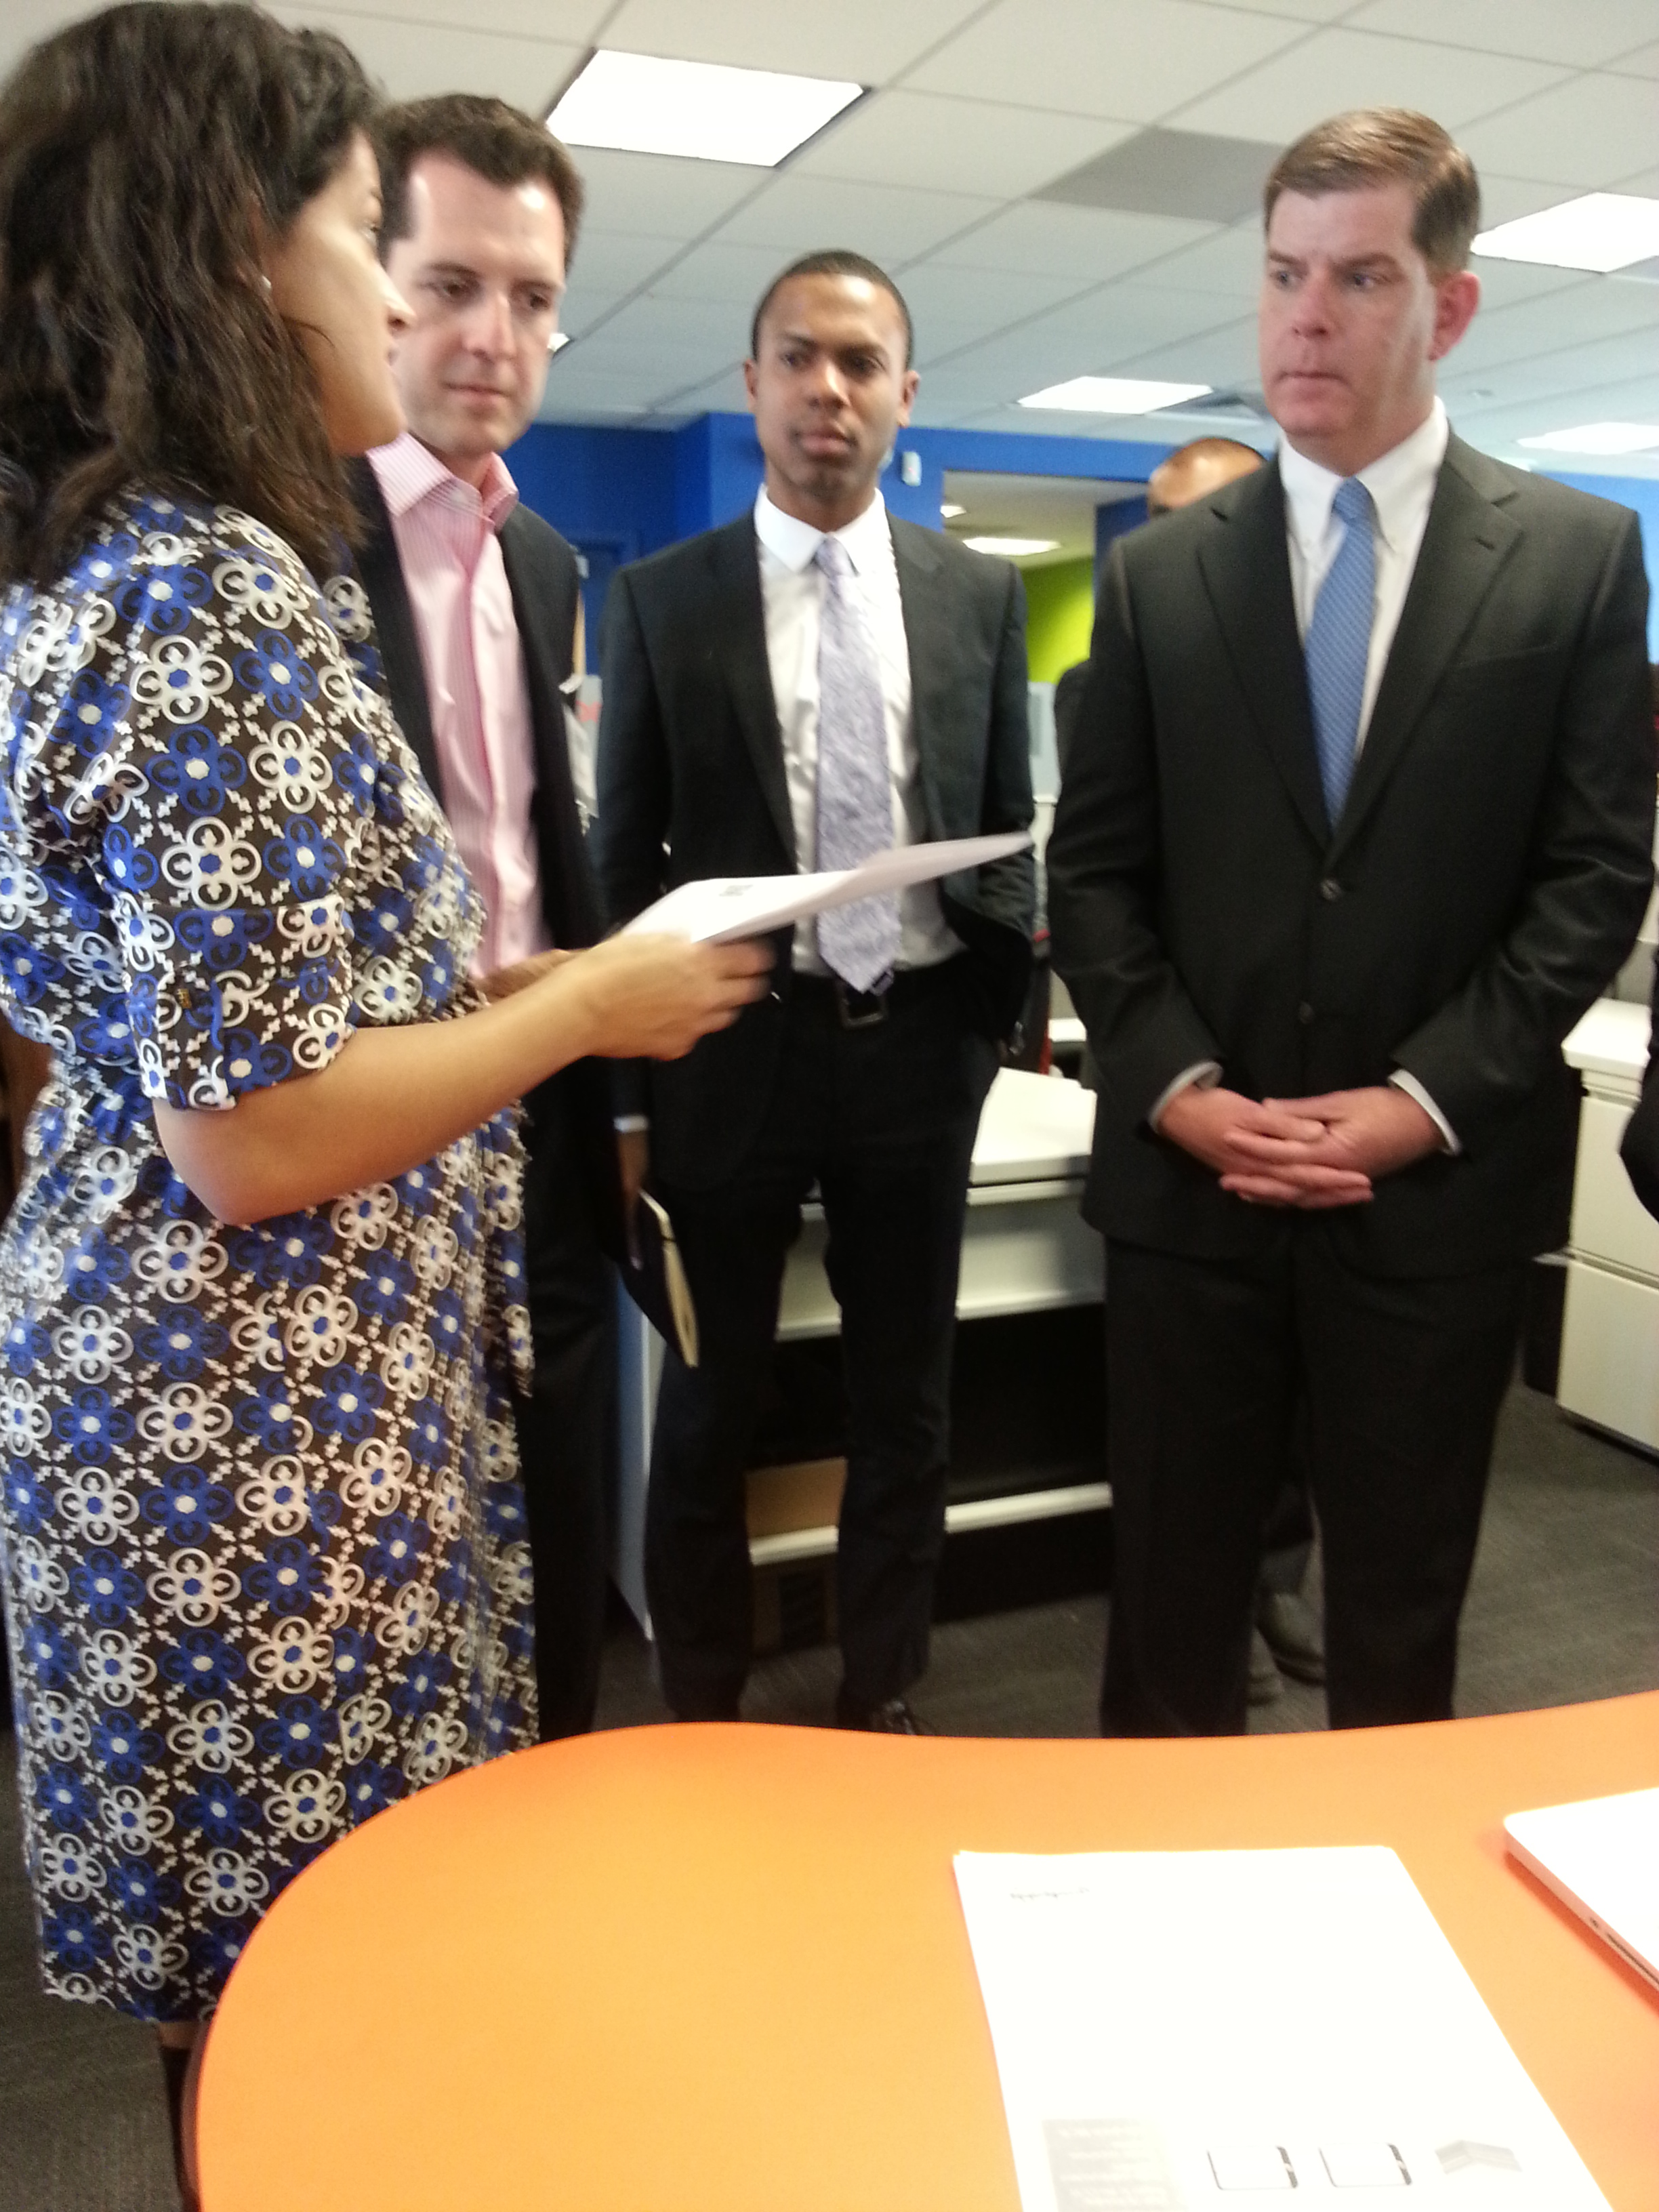 Gradeable founder Parul Singh explains our grading tool to Mayor Walsh